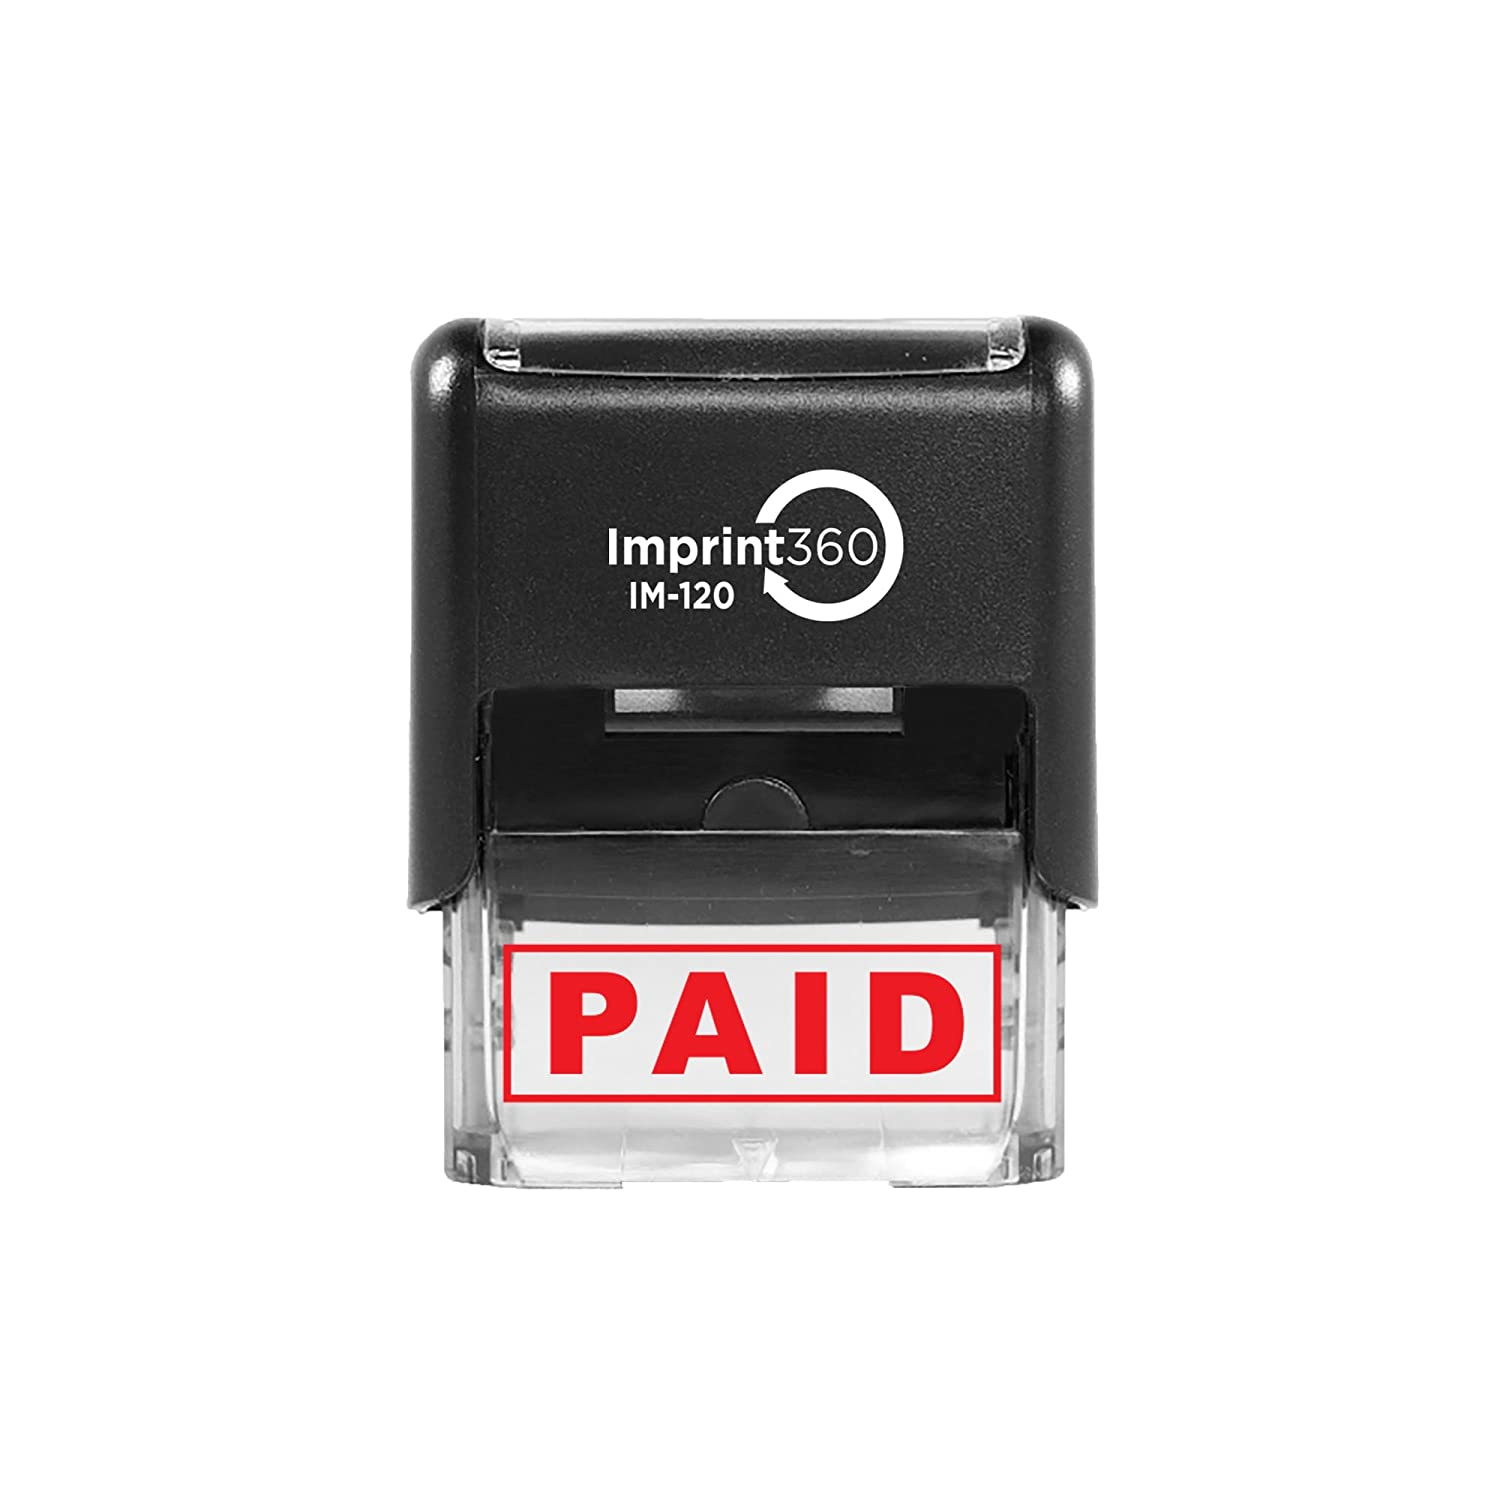 Imprint 360 AS-IMP1027 Precise Imprints Red Ink PAID Laser Engraved for Clean Heavy Duty Commerical Quality Self-Inking Rubber Stamp 9//16 x 1-1//2 Impression Size